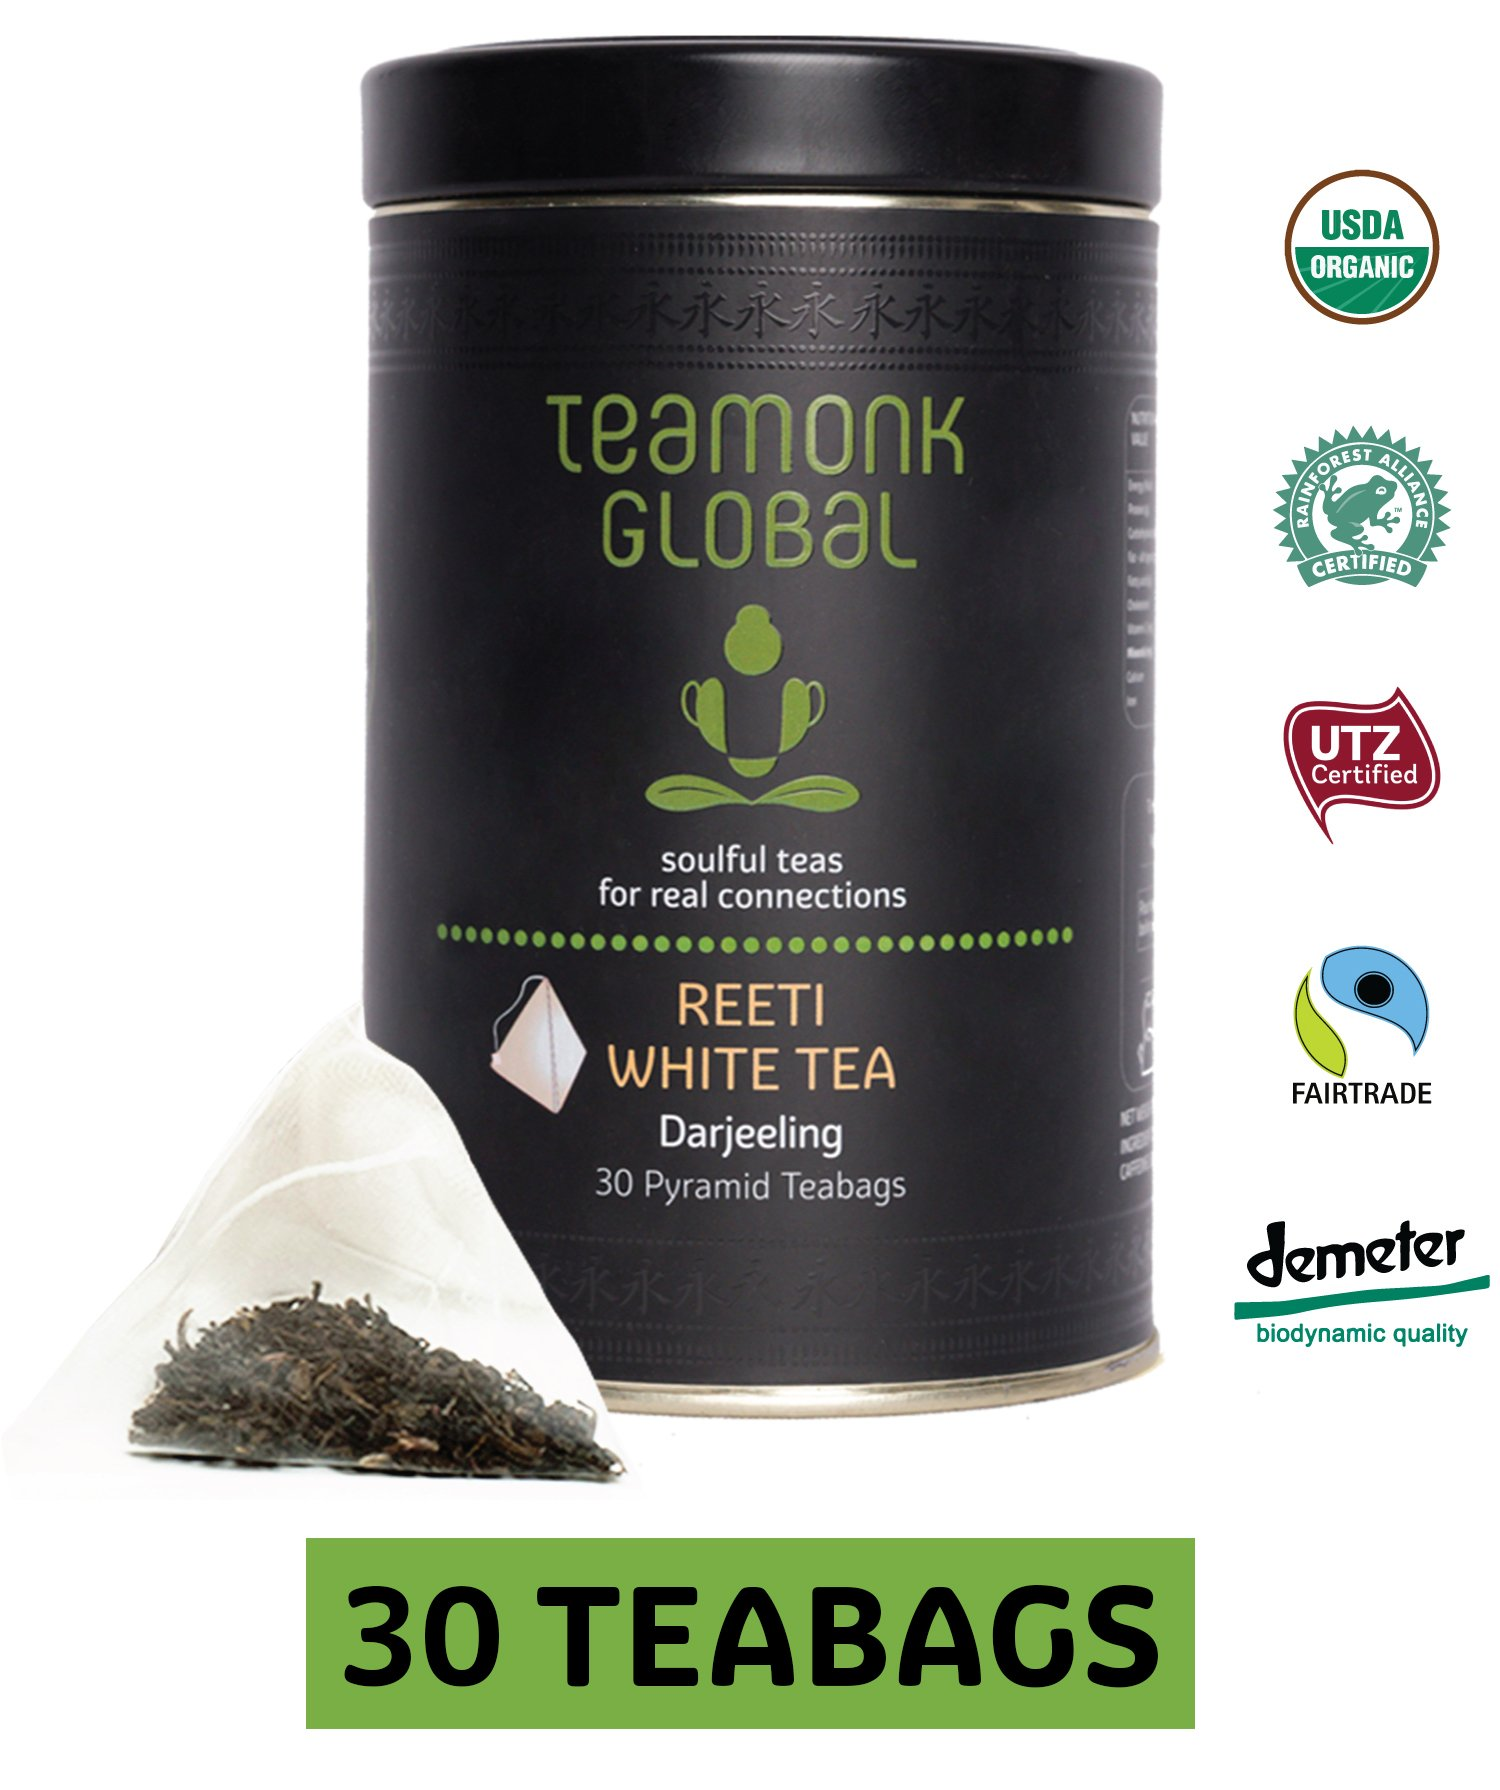 Teamonk Darjeeling Organic White Tea, 30 Teabags | 100% Natural Whole Leaf Pyramid Teabags from Himalayas | Reeti White Tea for Glow and Immunity | Low-Caffeine & Anti-Oxidants | No Additives